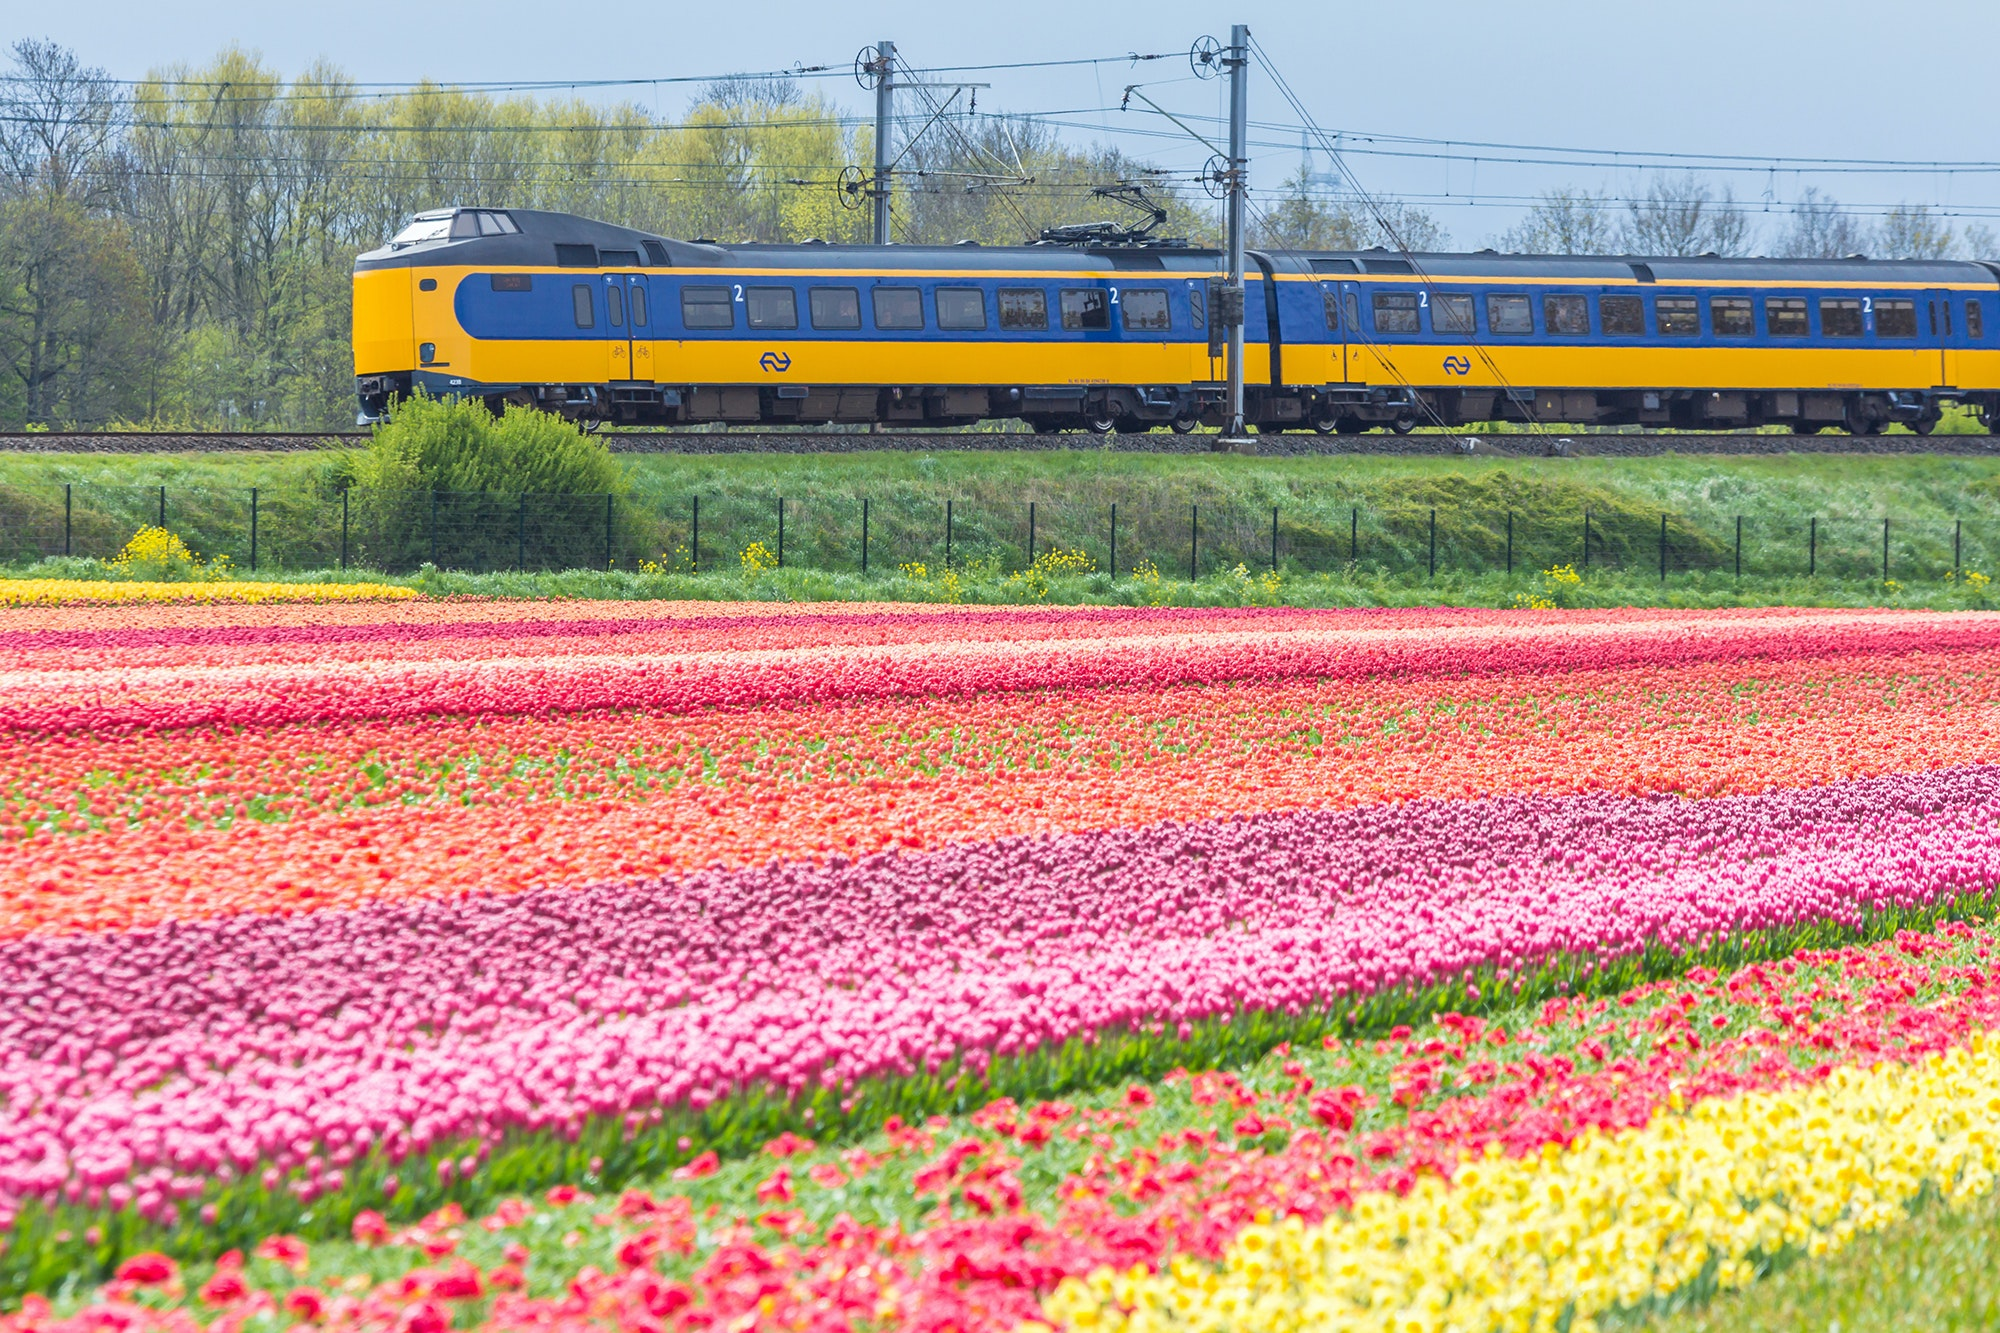 A Dutch Intercity train passes through the tulip fields near Lisse on its way between Haarlem and Leiden.